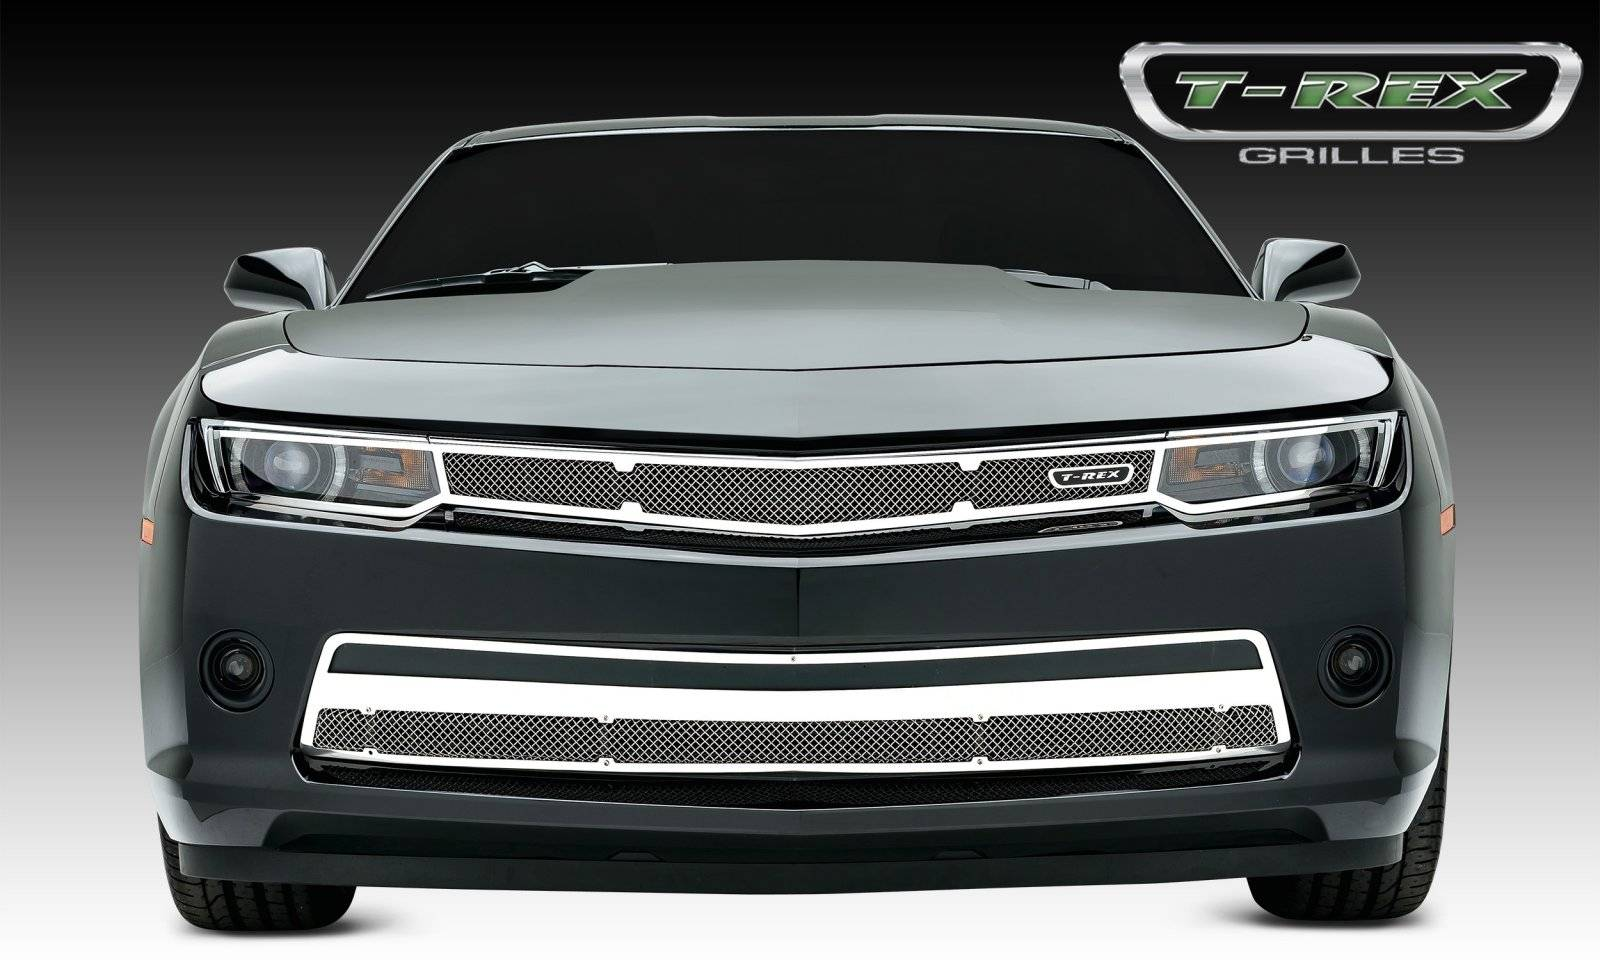 T-REX Chevrolet Camaro SS Upper Class, Formed Mesh, Main Grille Head Light Trim, Overlay, 1 Pc, Polished Stainless Steel - Pt # 54031